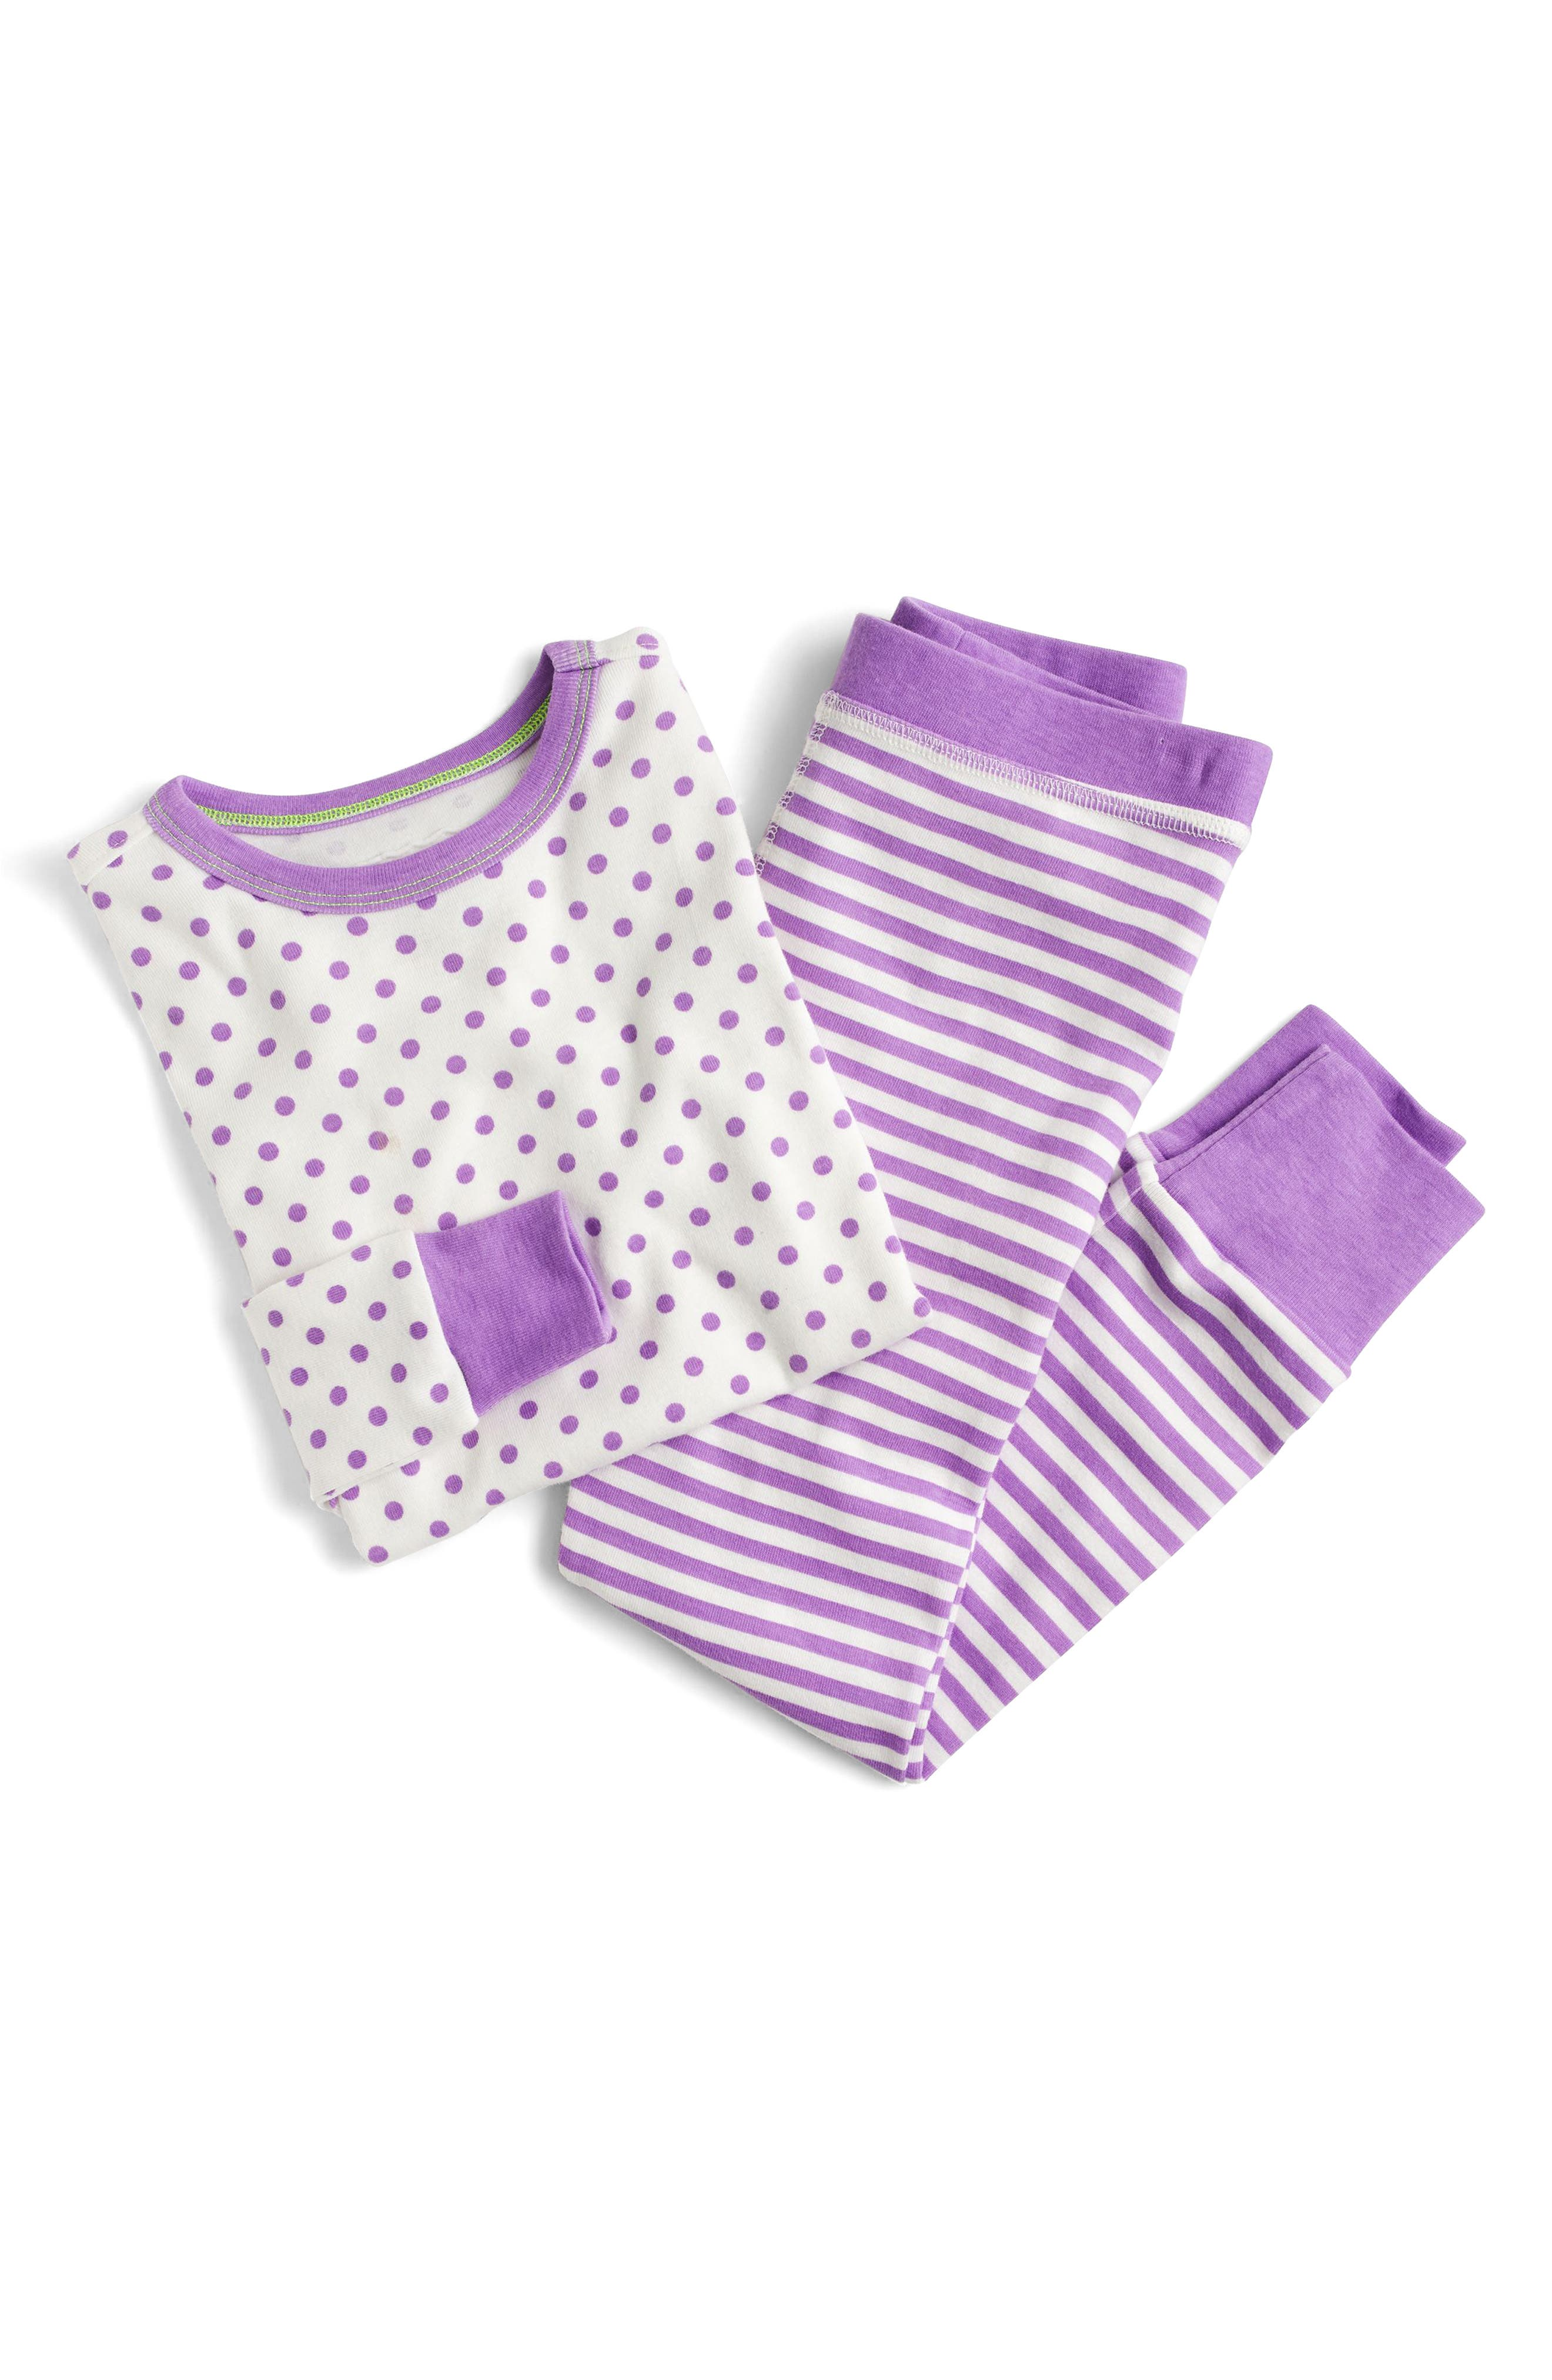 Main Image - crewcuts by J.Crew Dot & Stripe Fitted Two-Piece Pajamas (Toddler Girls, Little Girls & Big Girls)